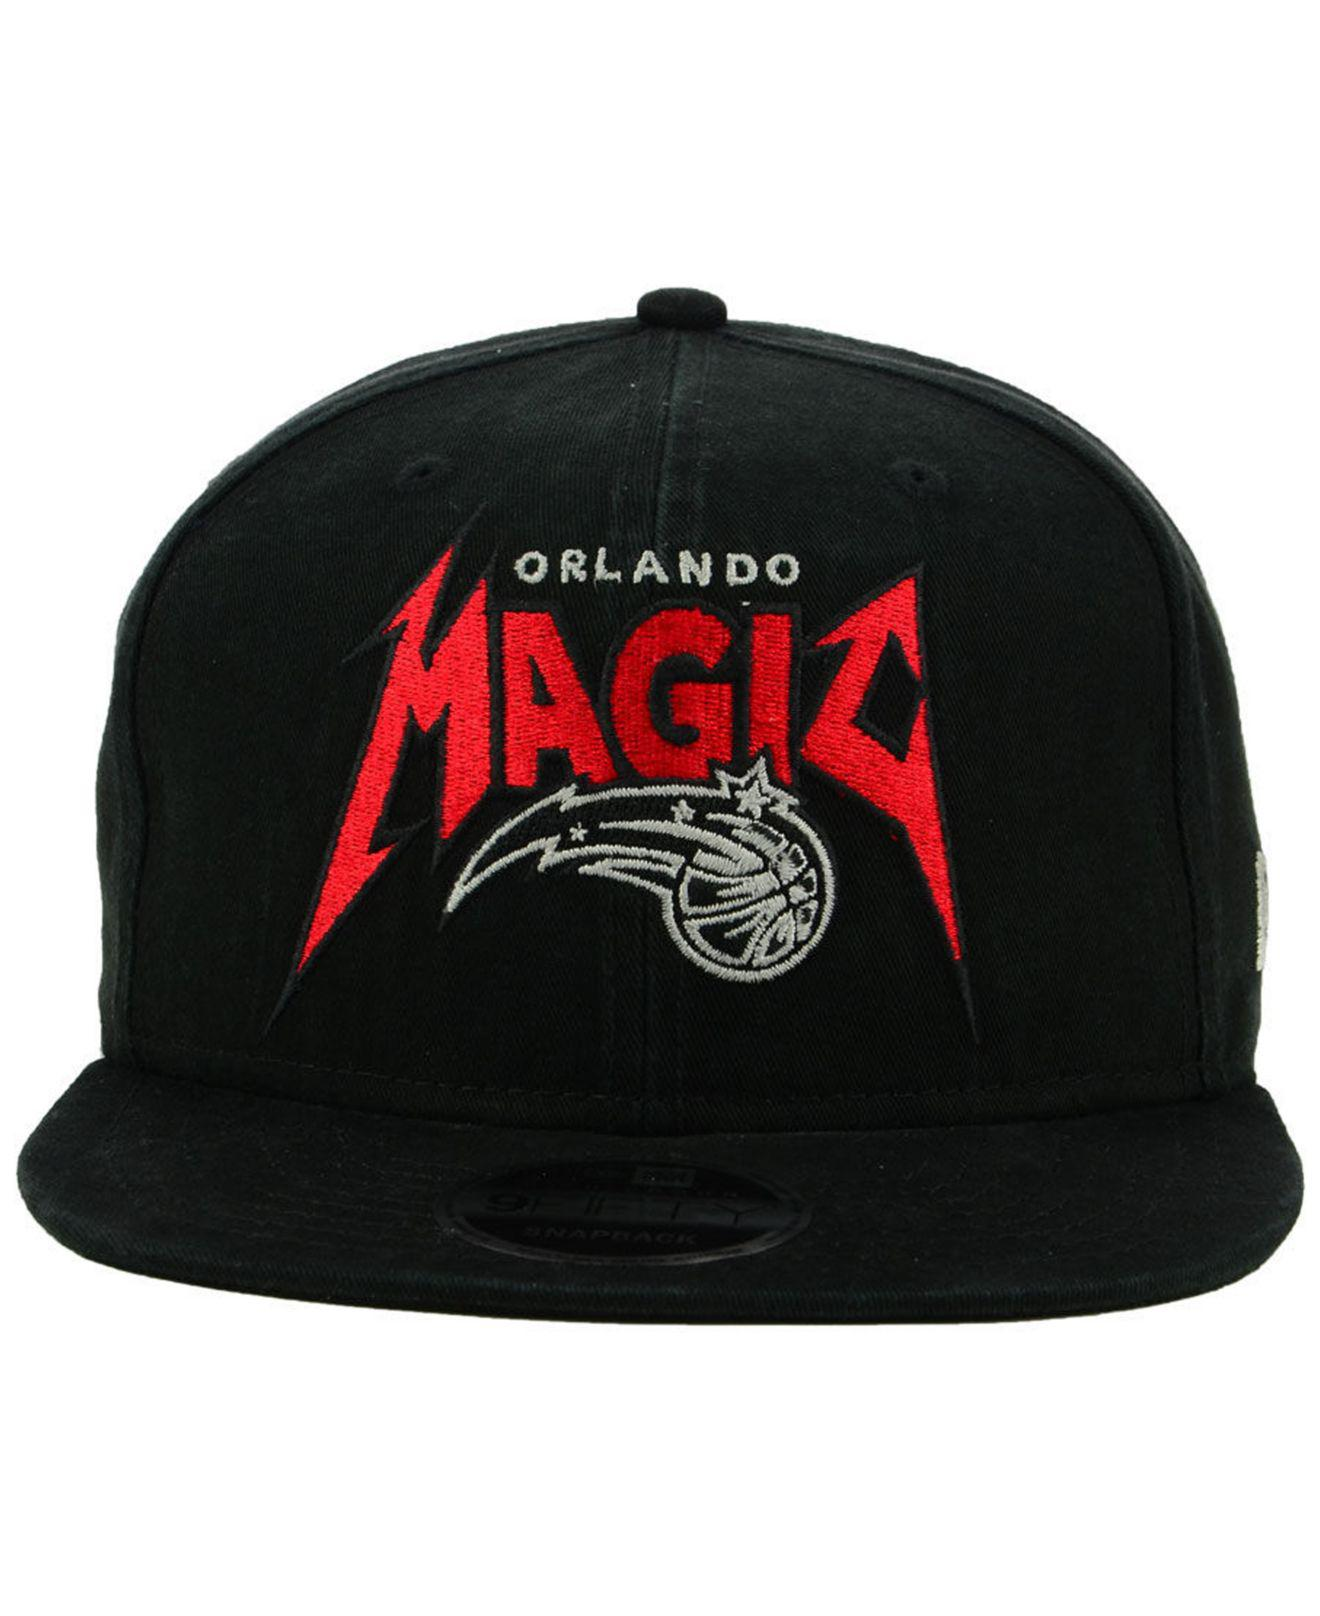 big sale 34e4e a8e60 Lyst - KTZ Orlando Magic 90s Throwback Groupie 9fifty Snapback Cap in Black  for Men